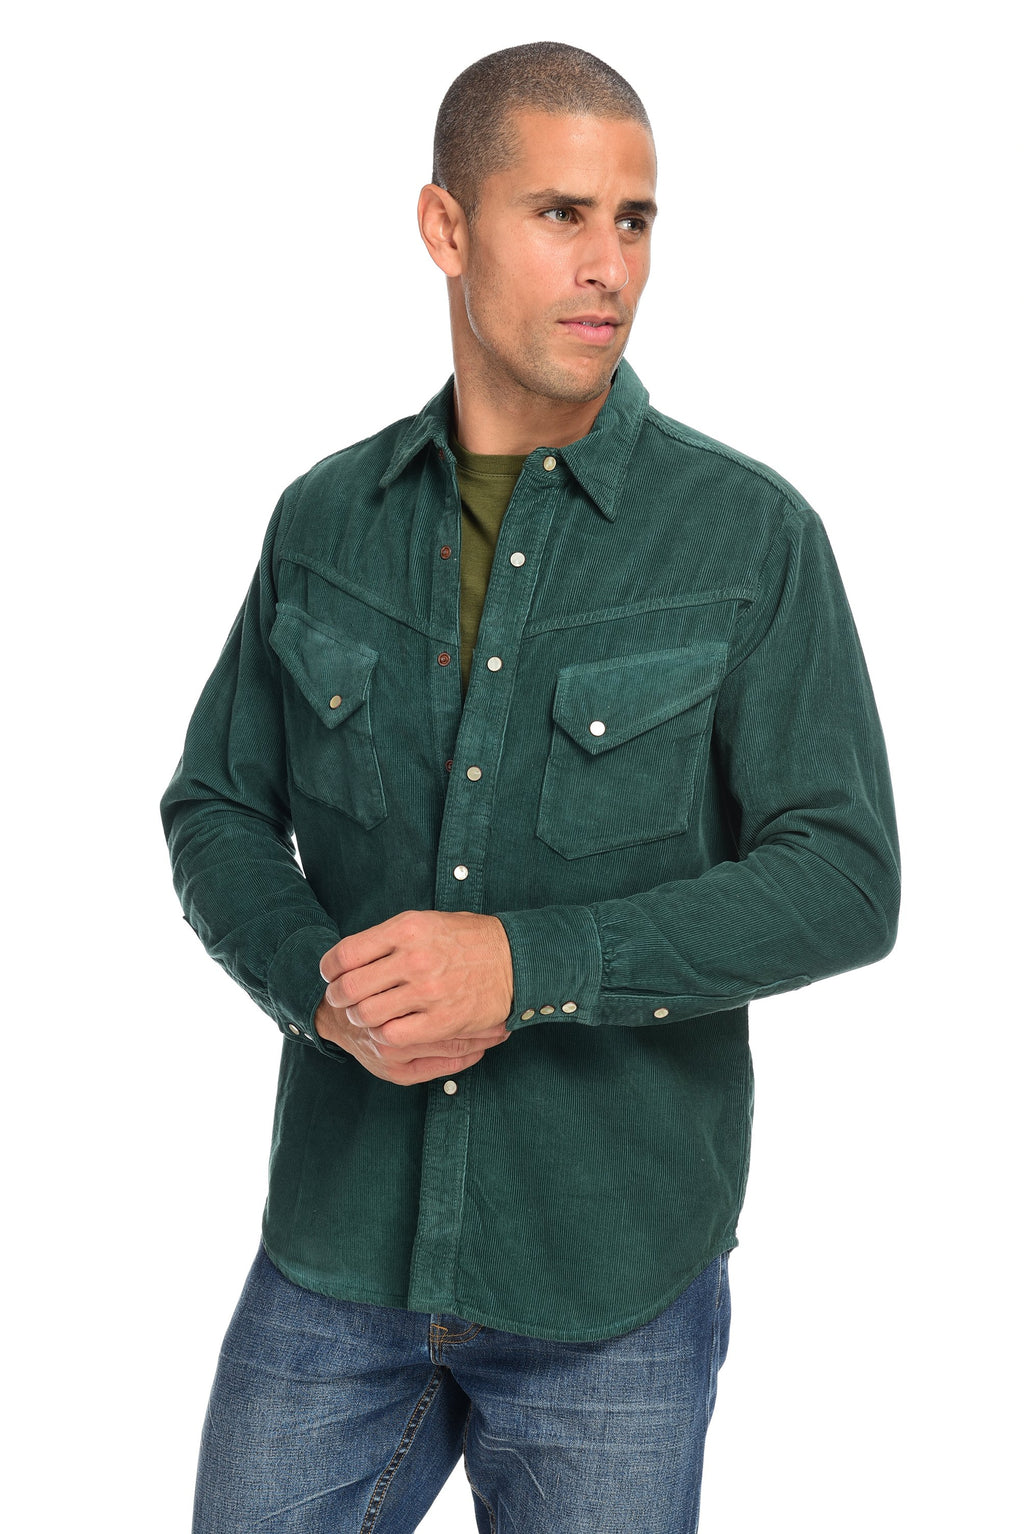 Corduroy Shirt Men's